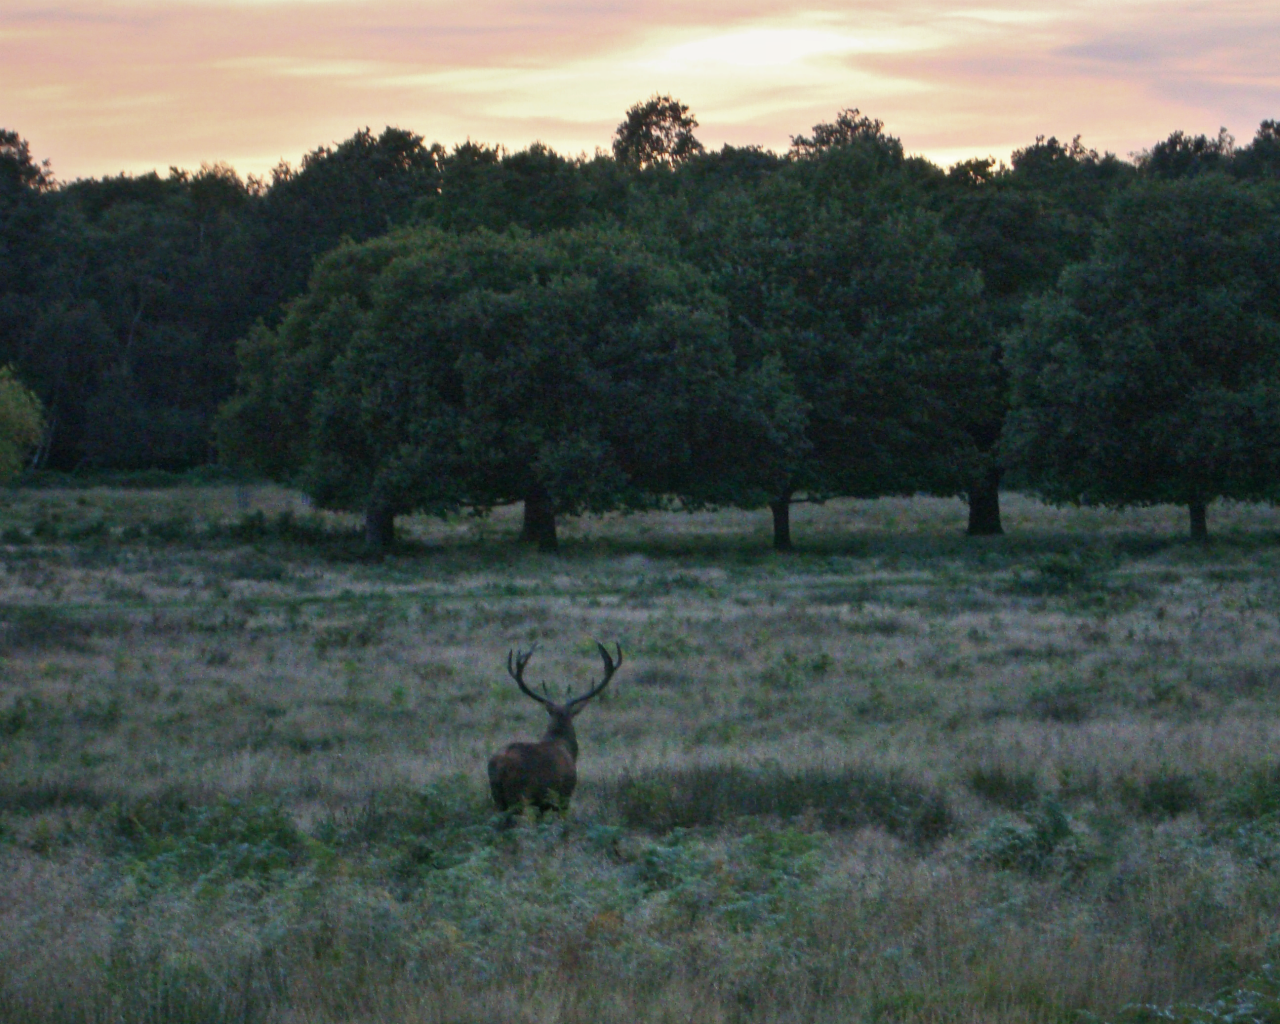 A red deer stag in Richmond Park, London, 29 September 2015